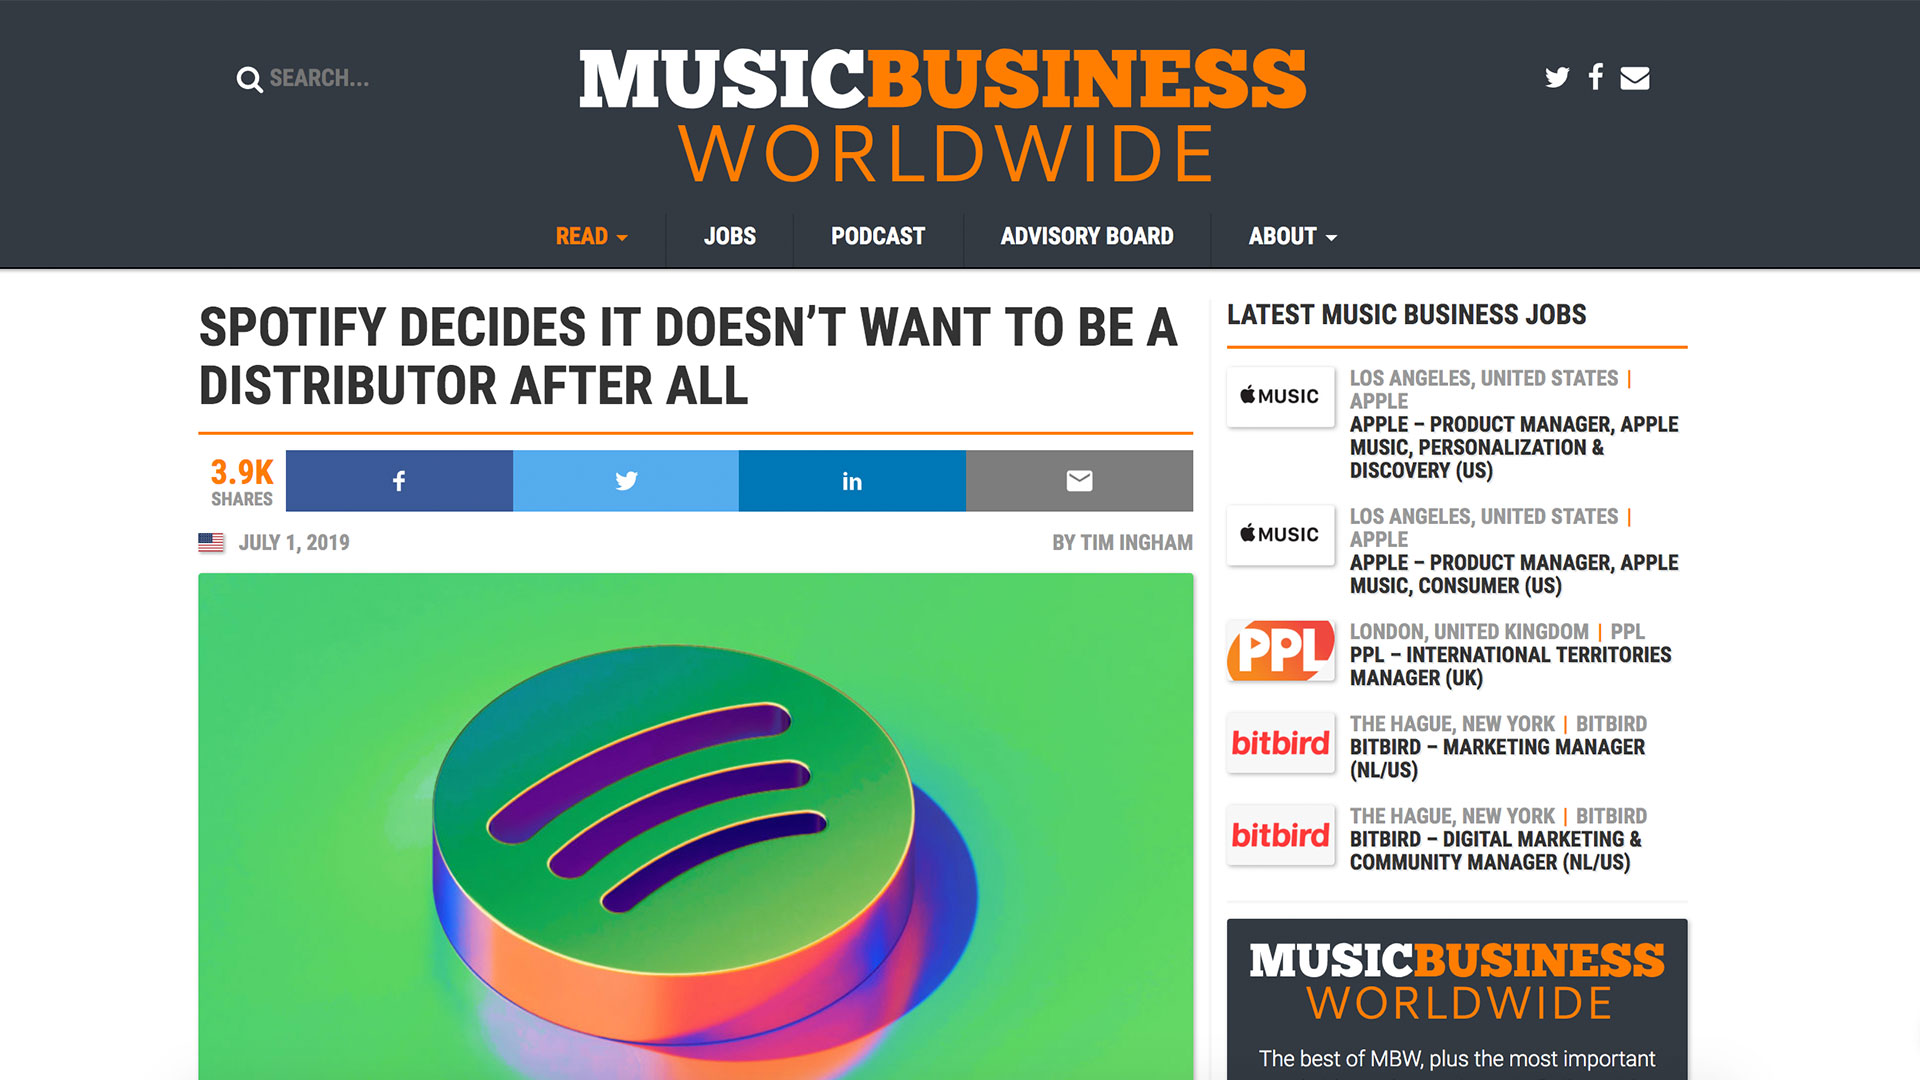 Fairness Rocks News SPOTIFY DECIDES IT DOESN'T WANT TO BE A DISTRIBUTOR AFTER ALL